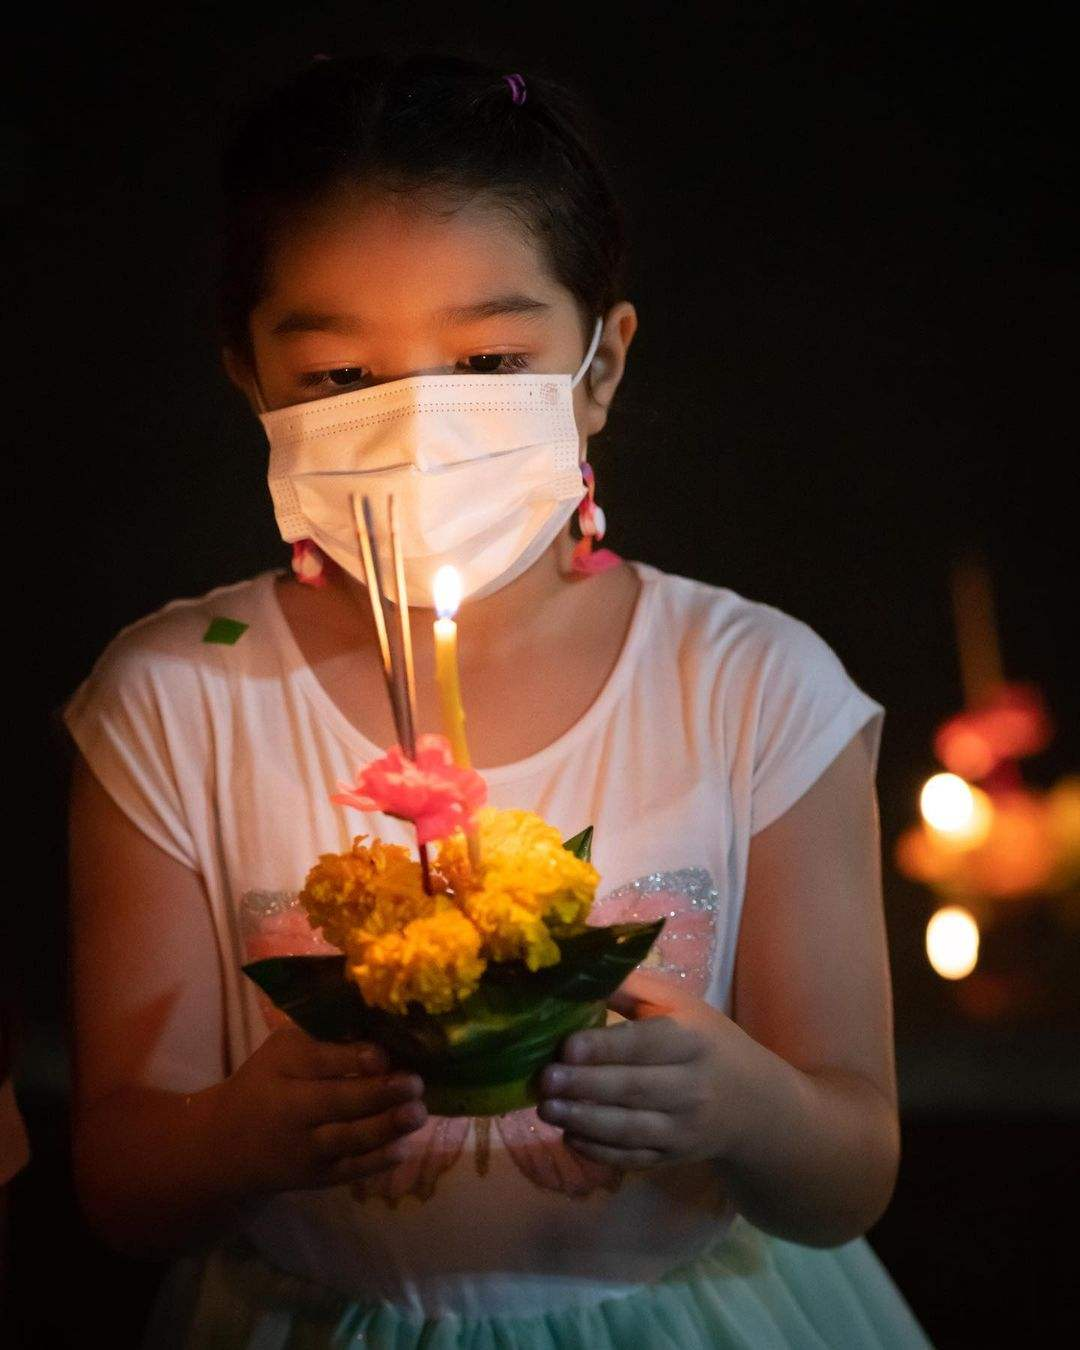 Girl with mouth msask on and a Krathong in her hands during Loy Krathong 2020